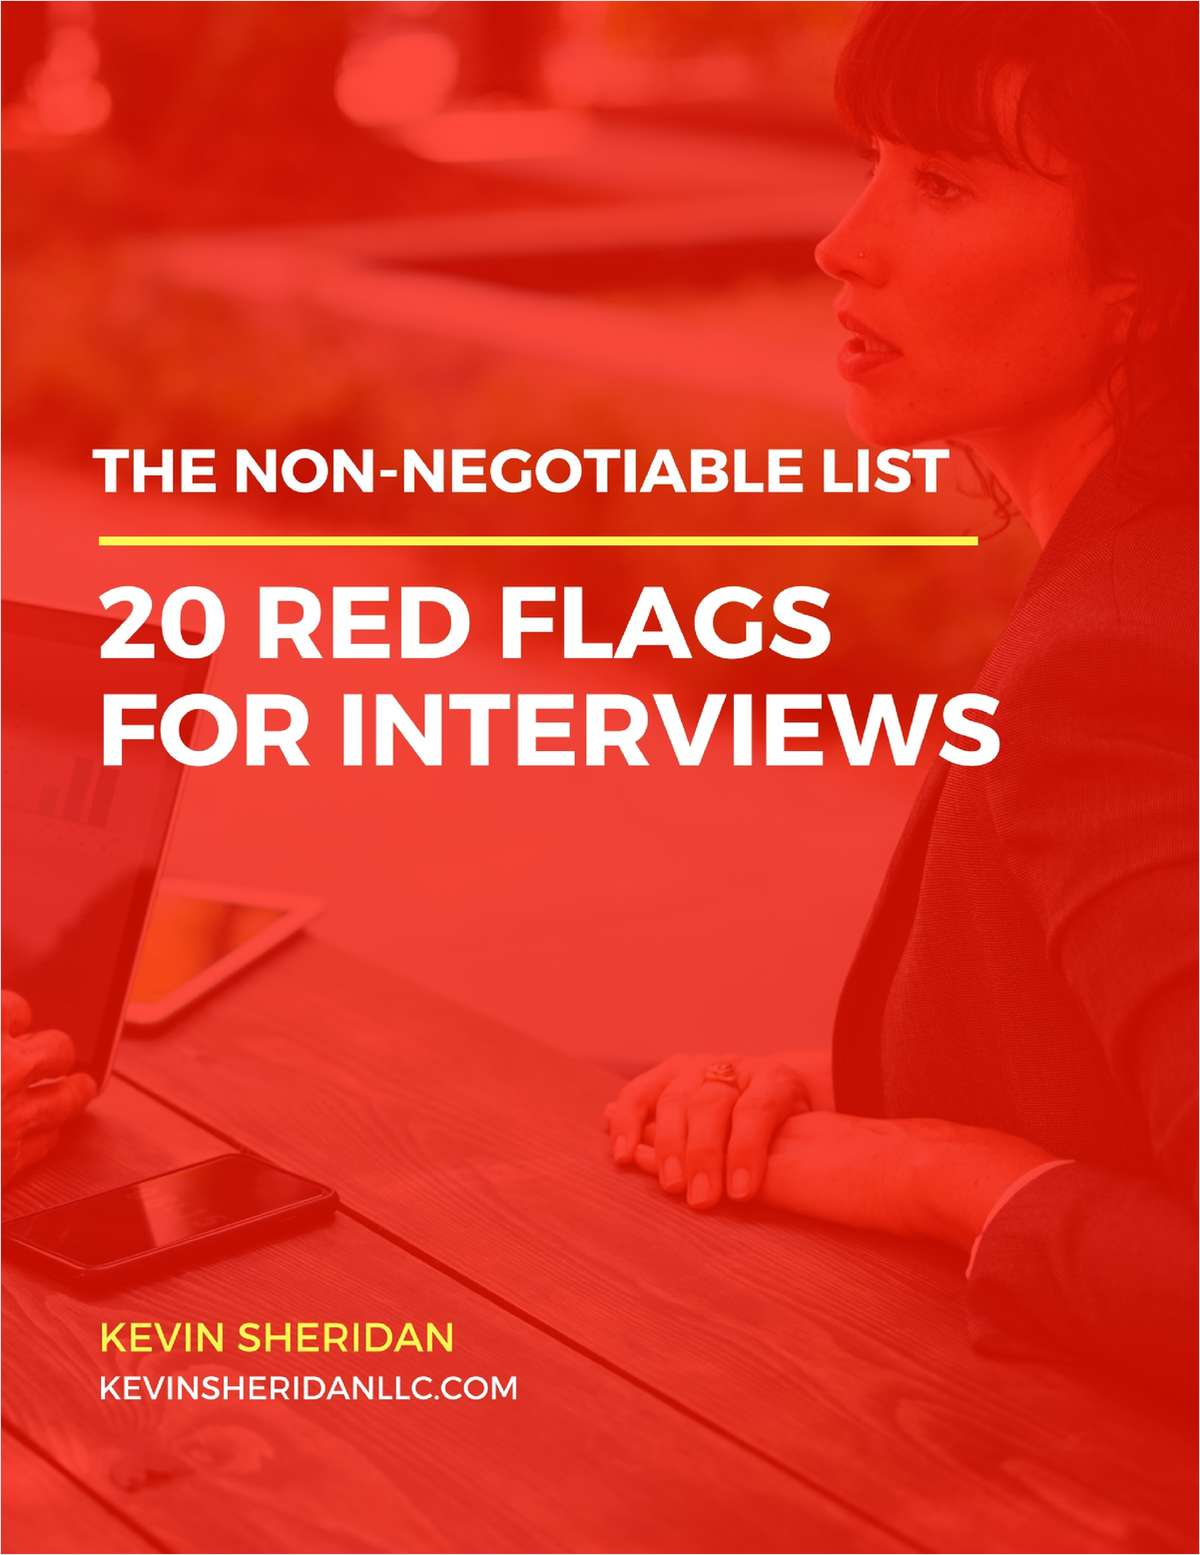 The Non-Negotiable List - 20 Red Flags For Interviews